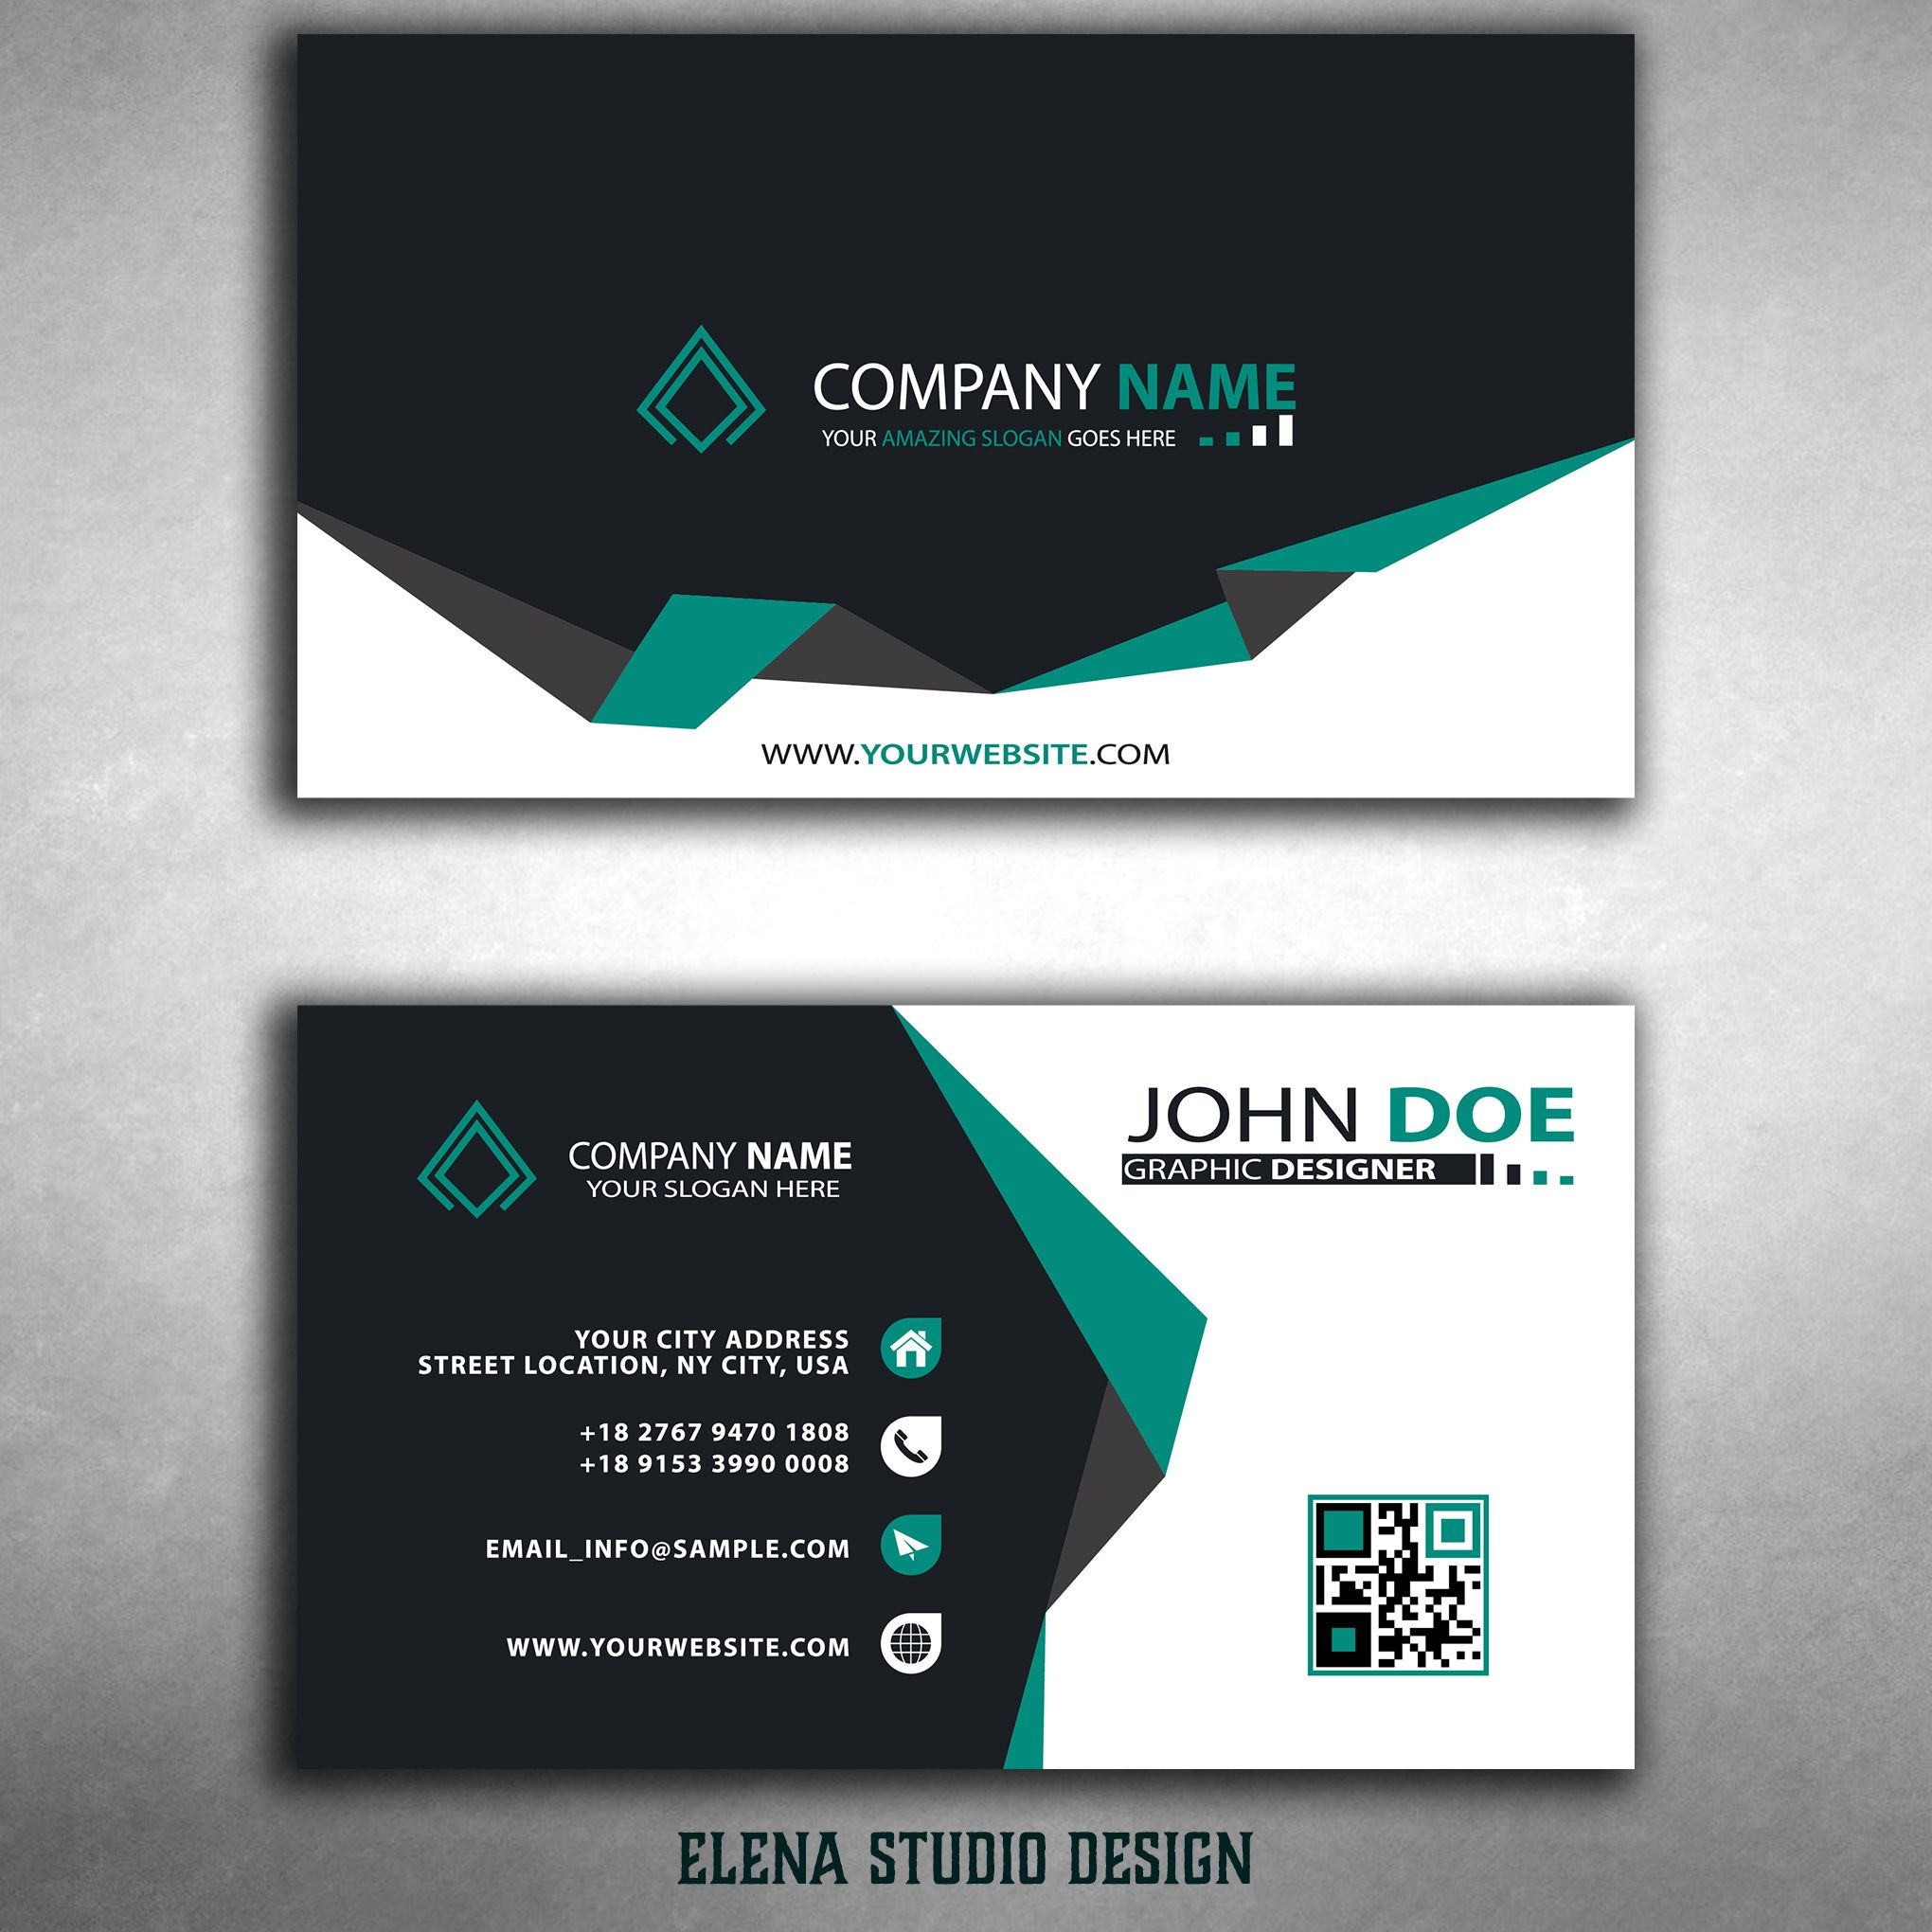 Orizontal Business Cards | logo design | Pinterest | Ai ...